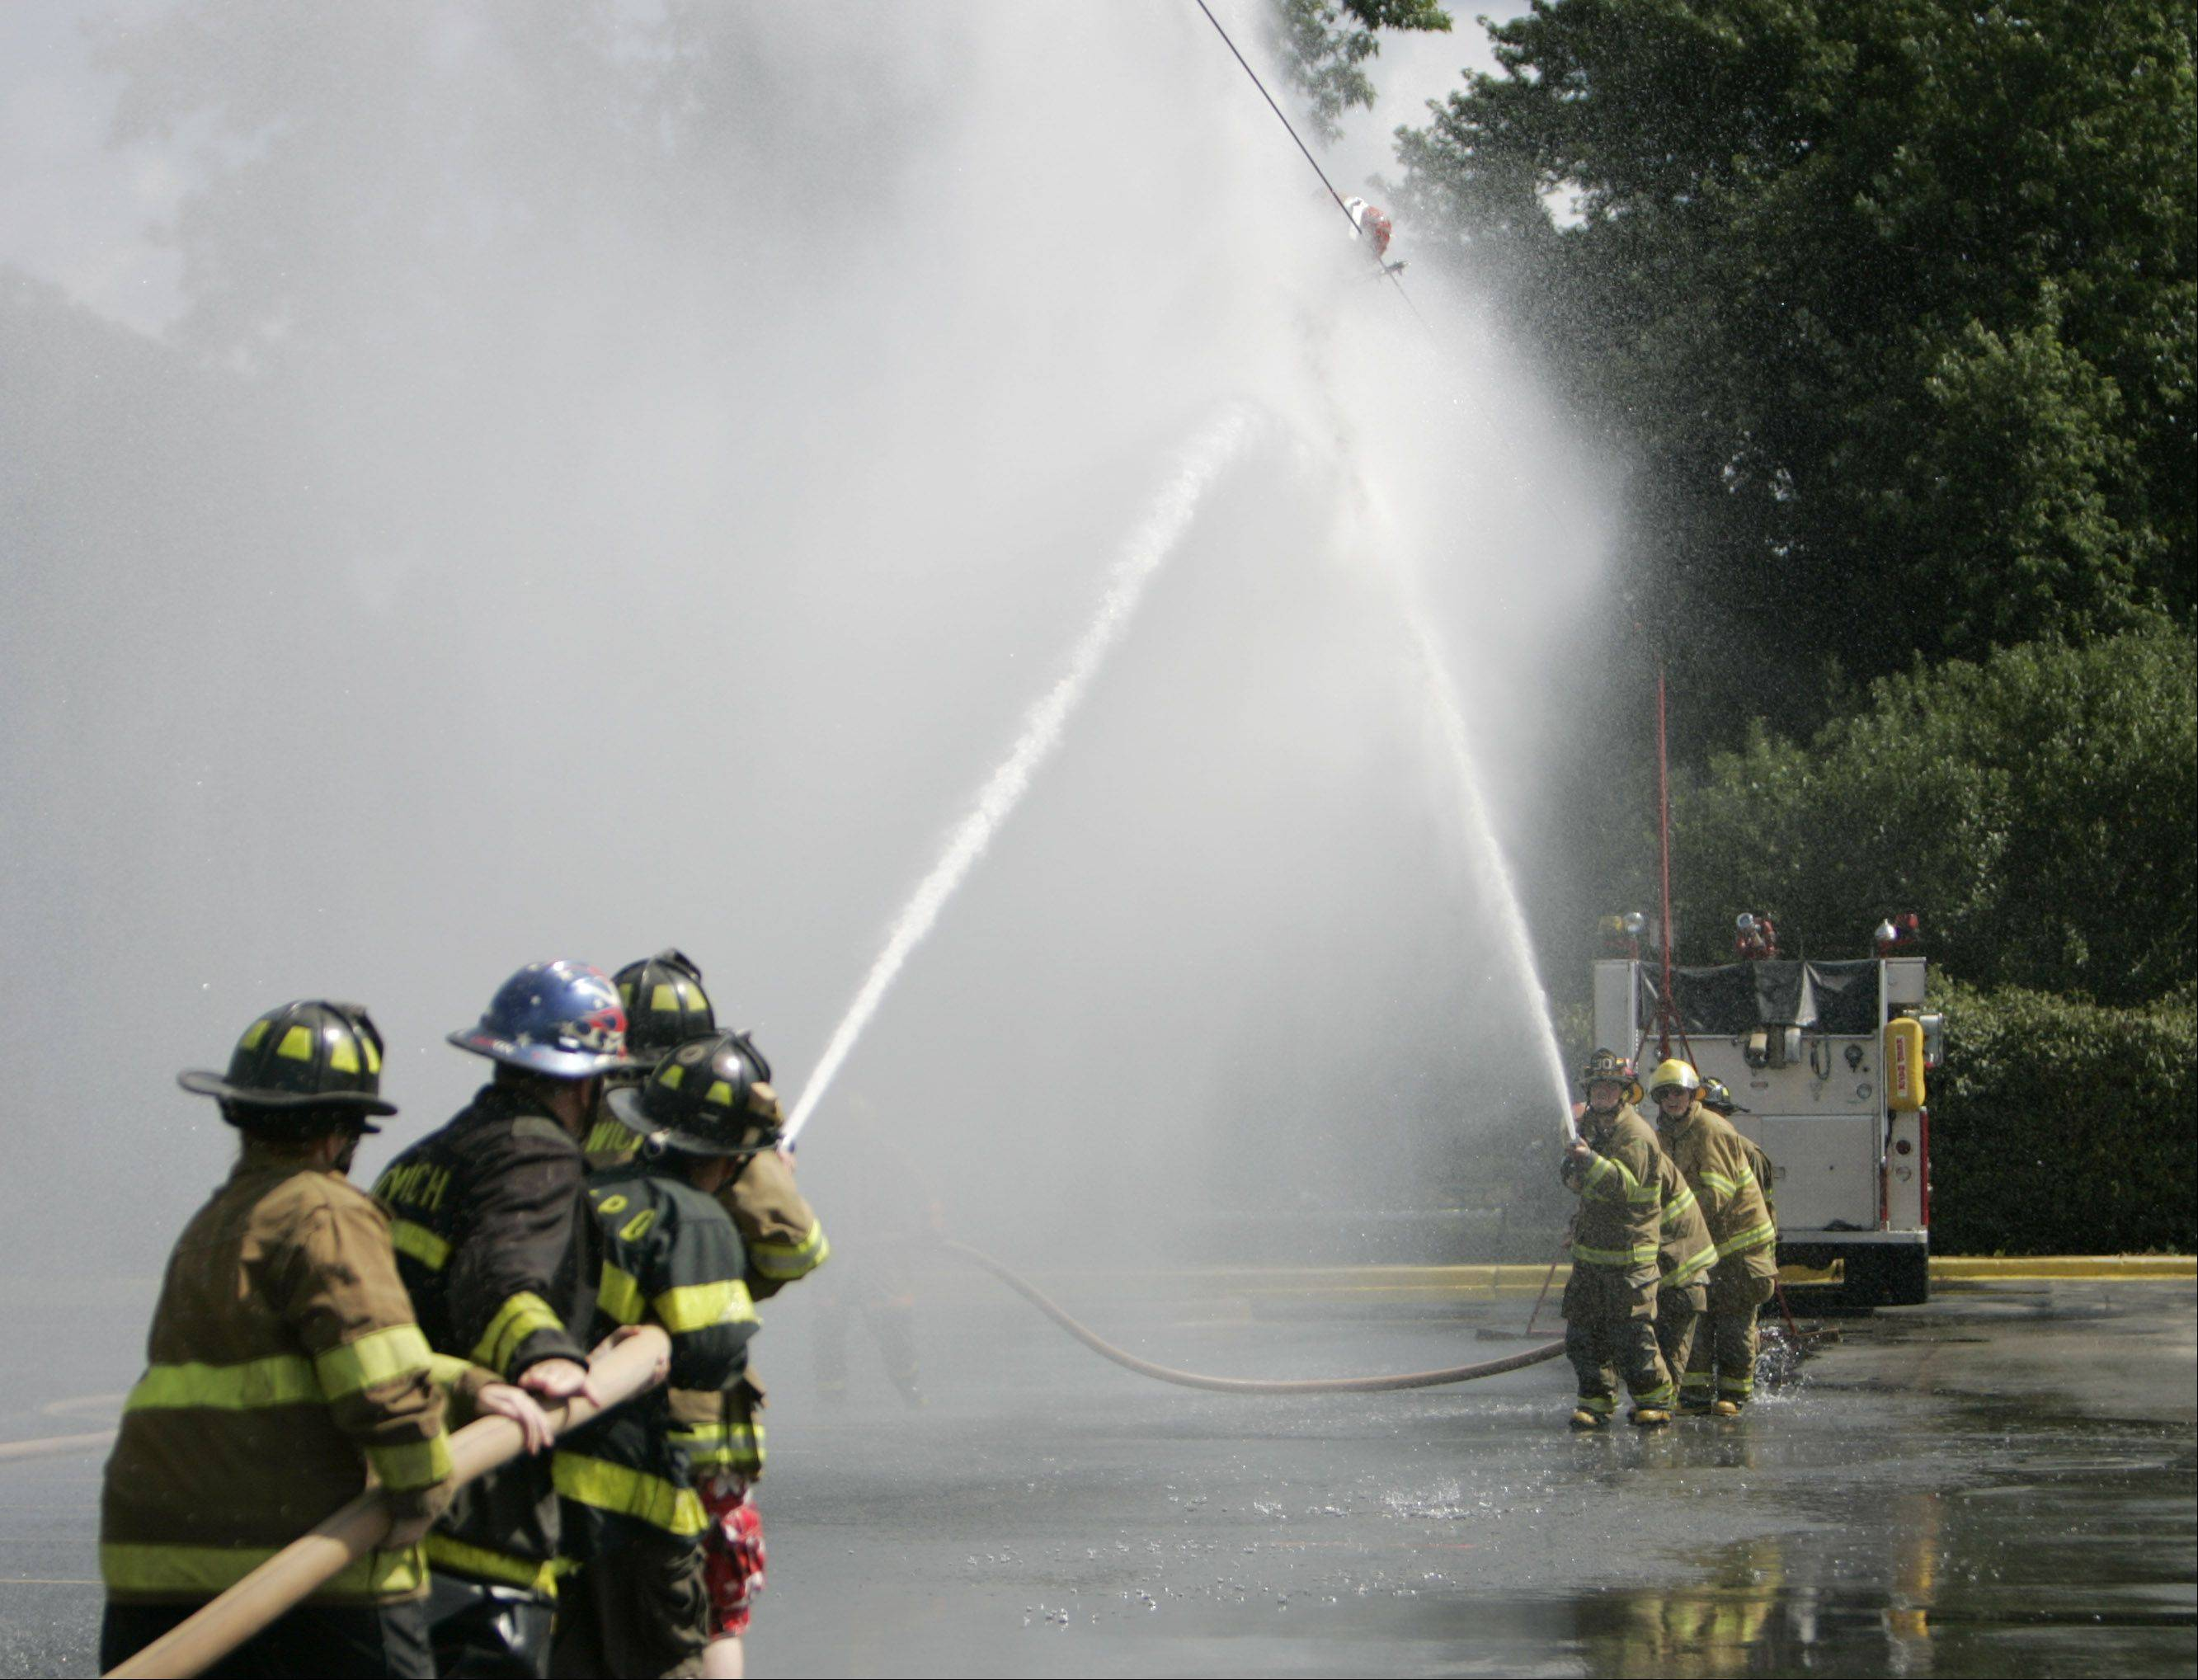 Firefighters compete in the Fire Fighters Association water fights during a previous Sugar Grove Corn Boil festival.